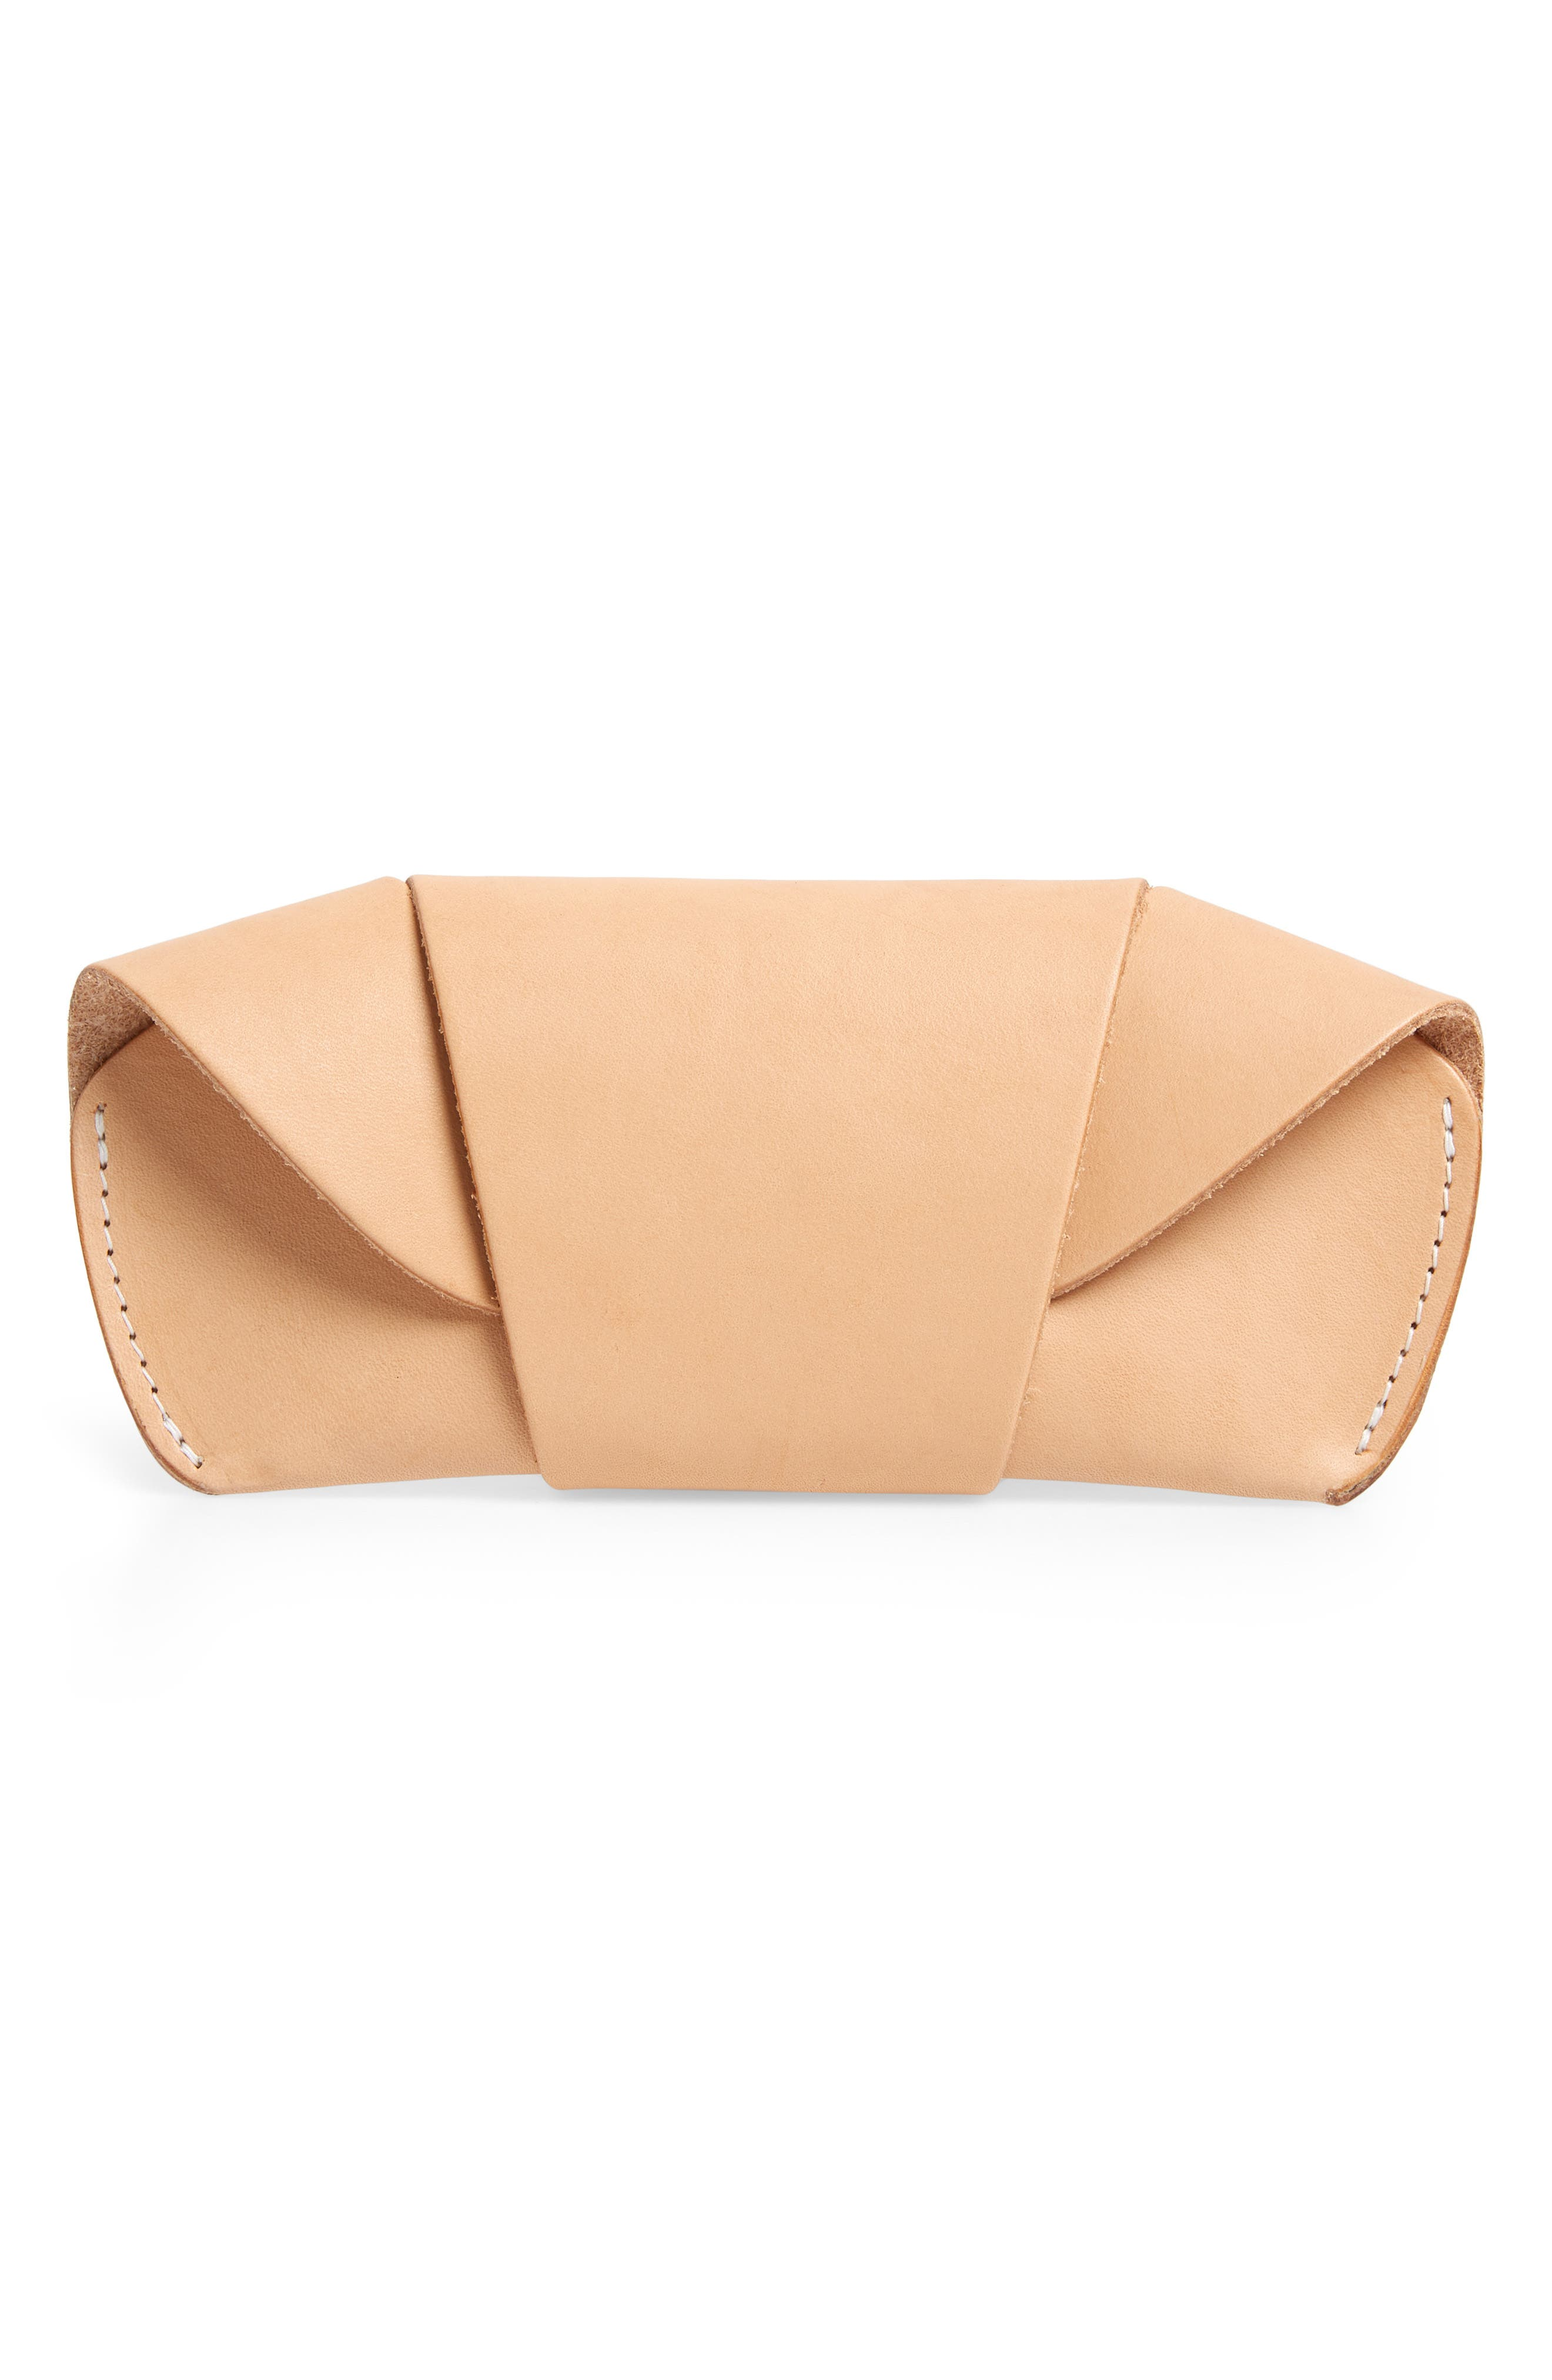 Leather Sunglass Case,                         Main,                         color, NATURAL